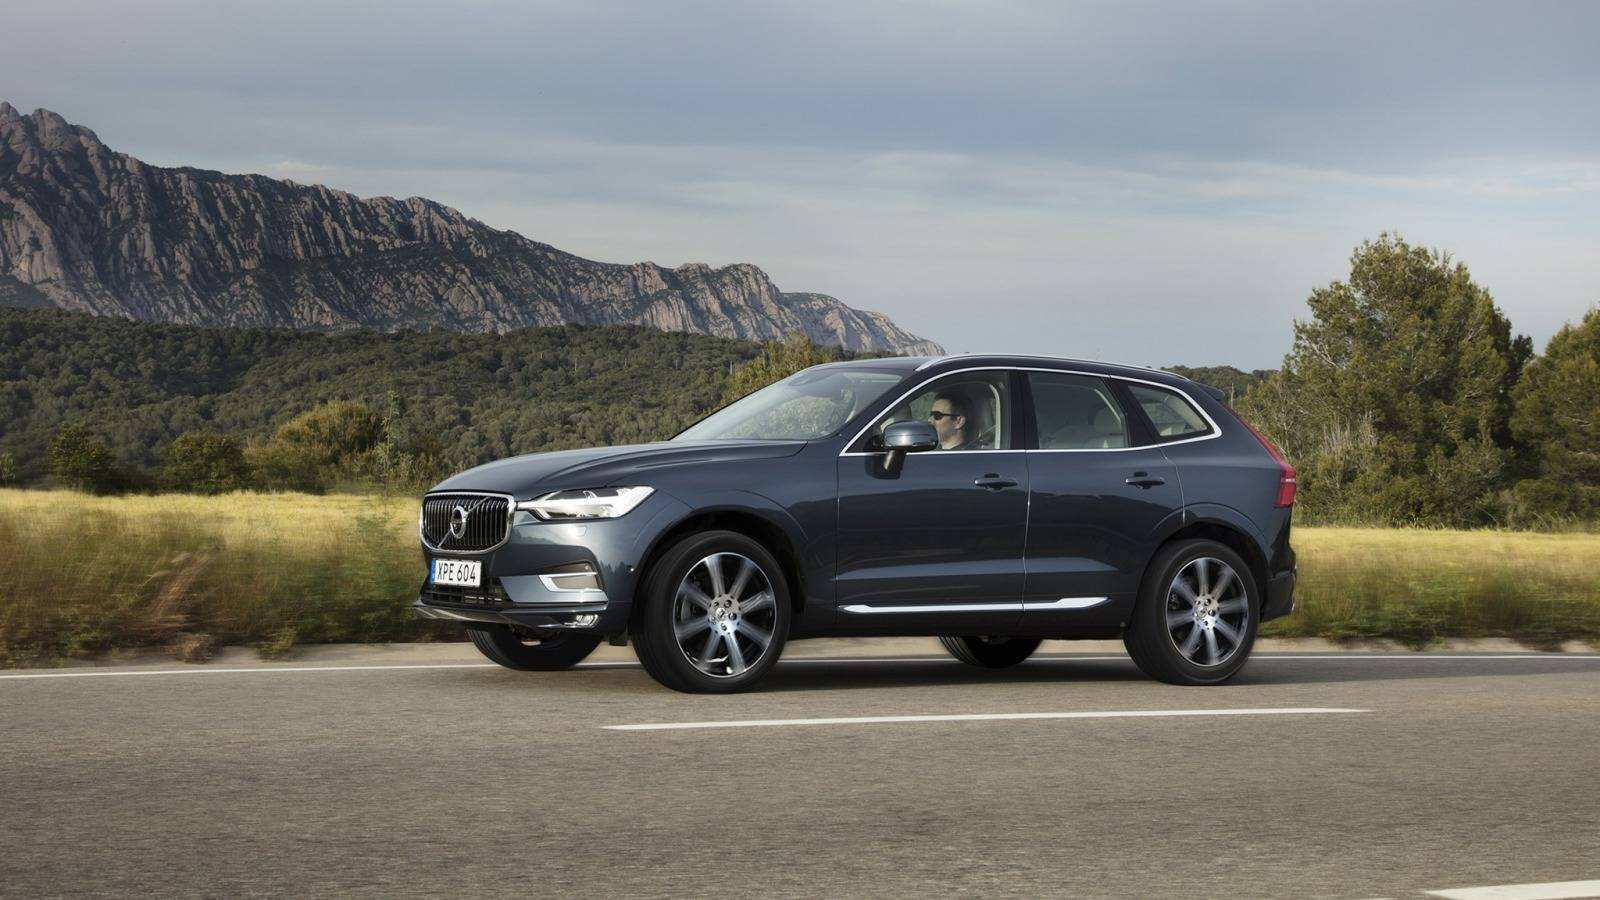 23 New Best Volvo 2019 Xc60 Review Exterior New Review with Best Volvo 2019 Xc60 Review Exterior